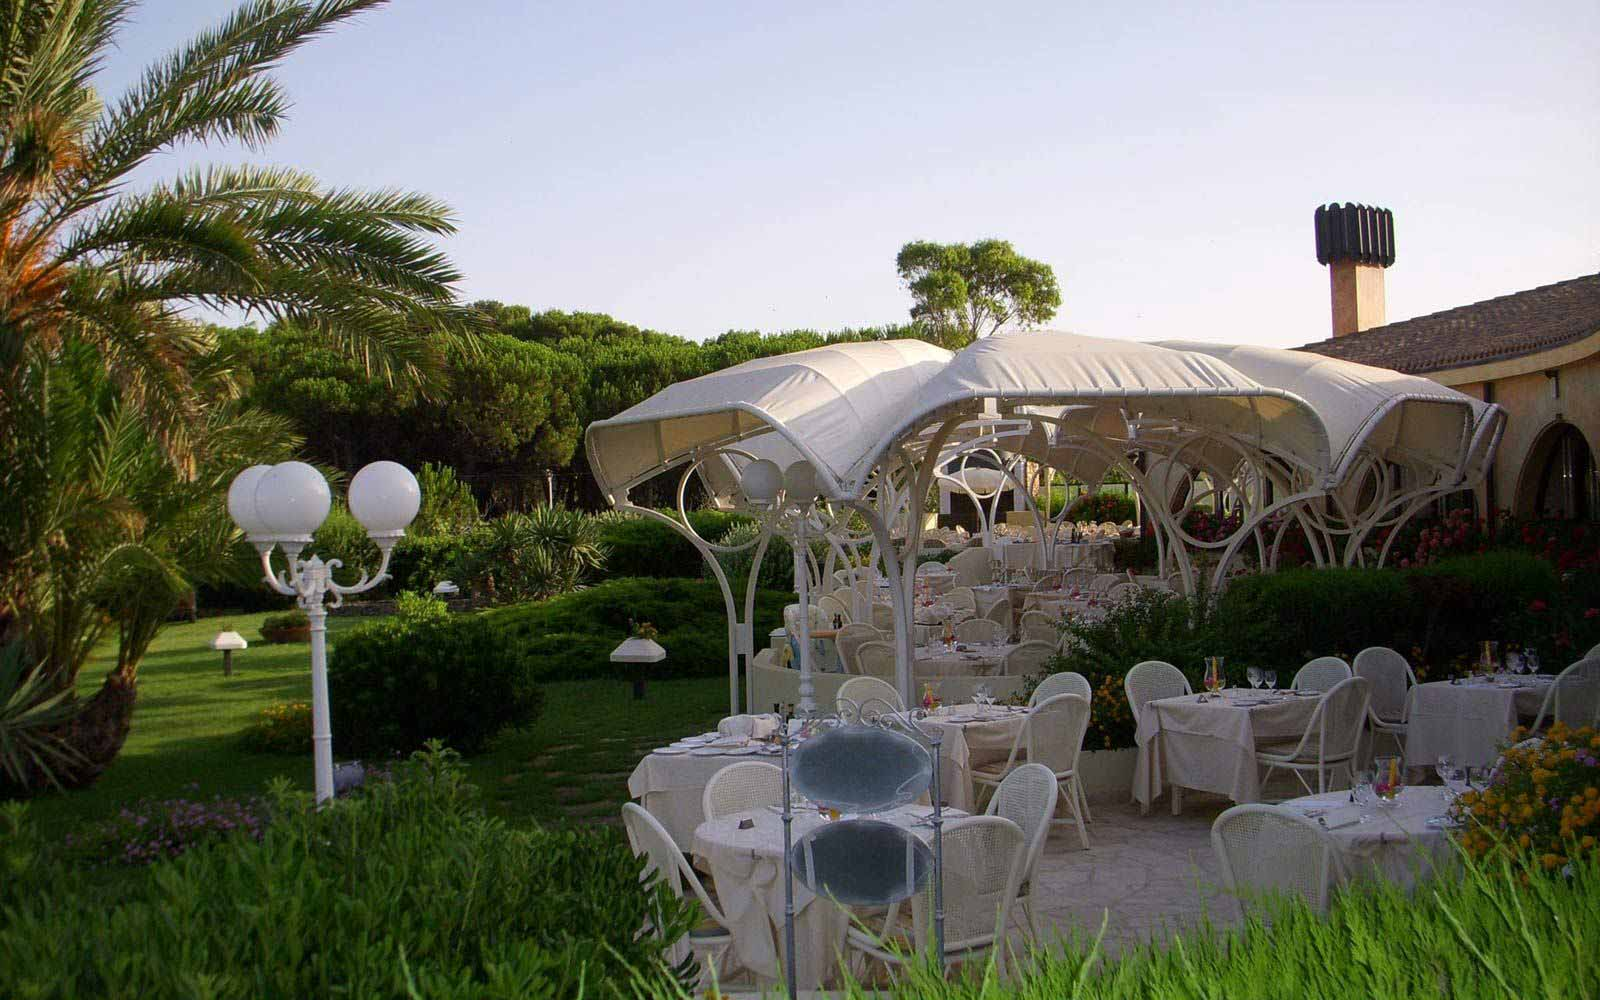 Outdoor dining at Hotel Baia Di Nora